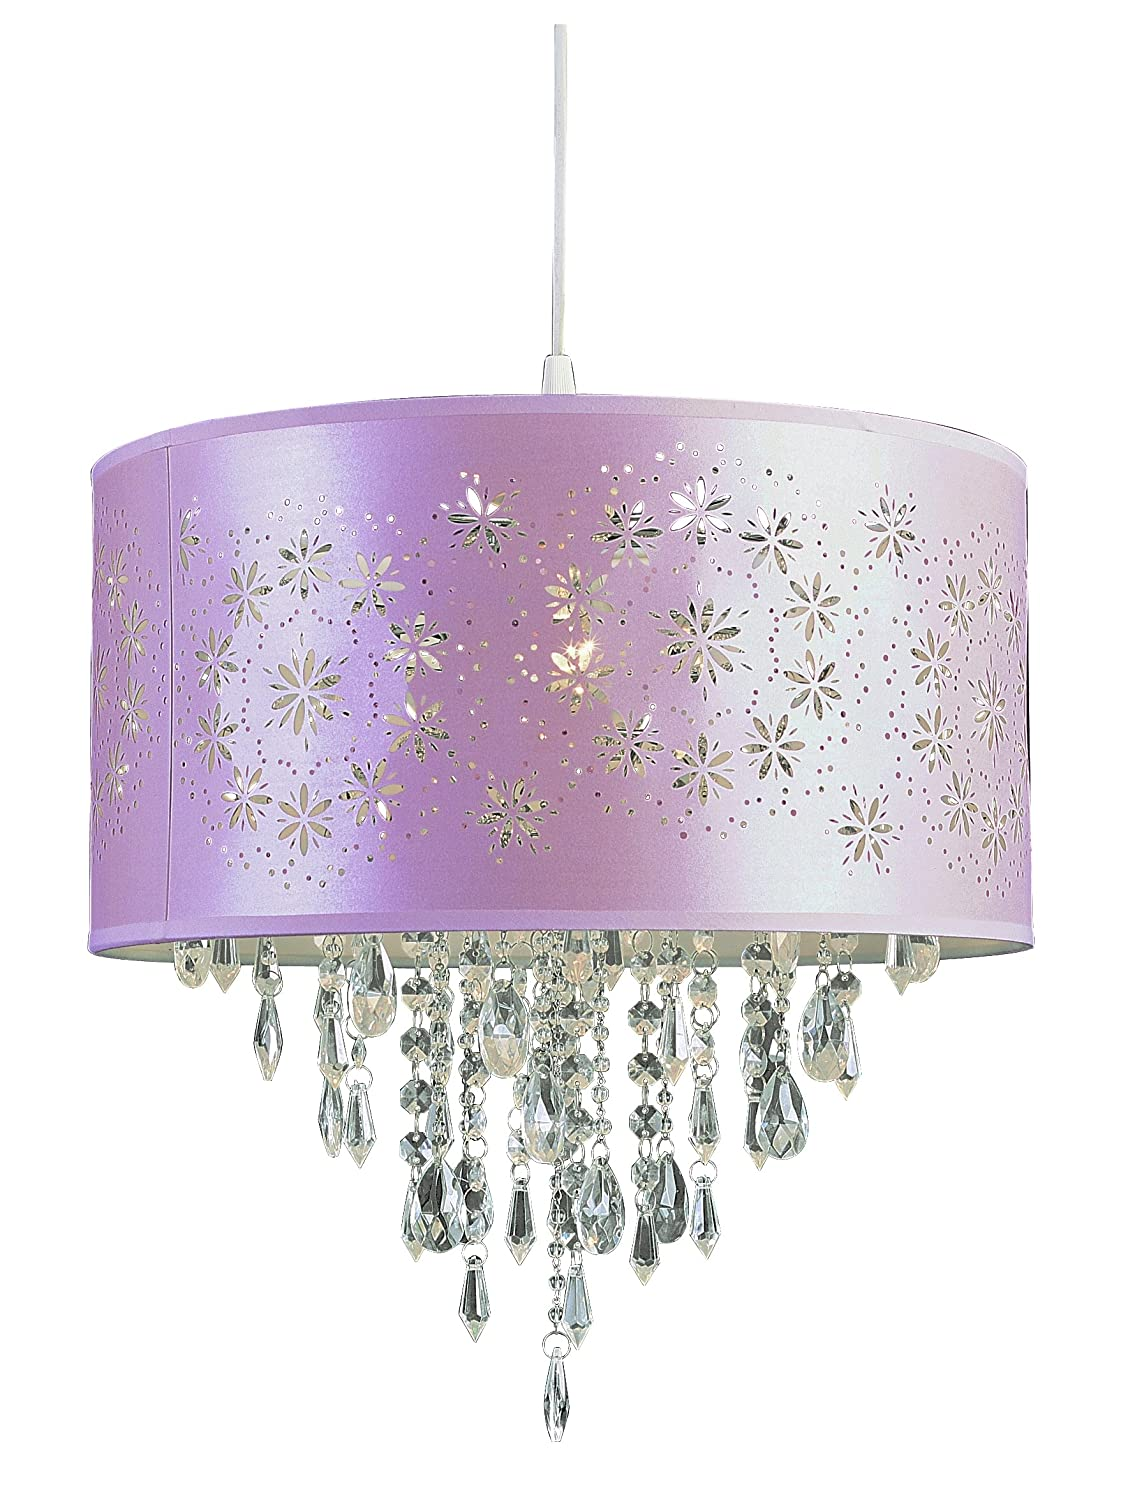 Trans globe lighting pnd 607 lilac indoor desert rose 15 pendant trans globe lighting pnd 607 lilac indoor desert rose 15 pendant white ceiling pendant fixtures amazon arubaitofo Gallery